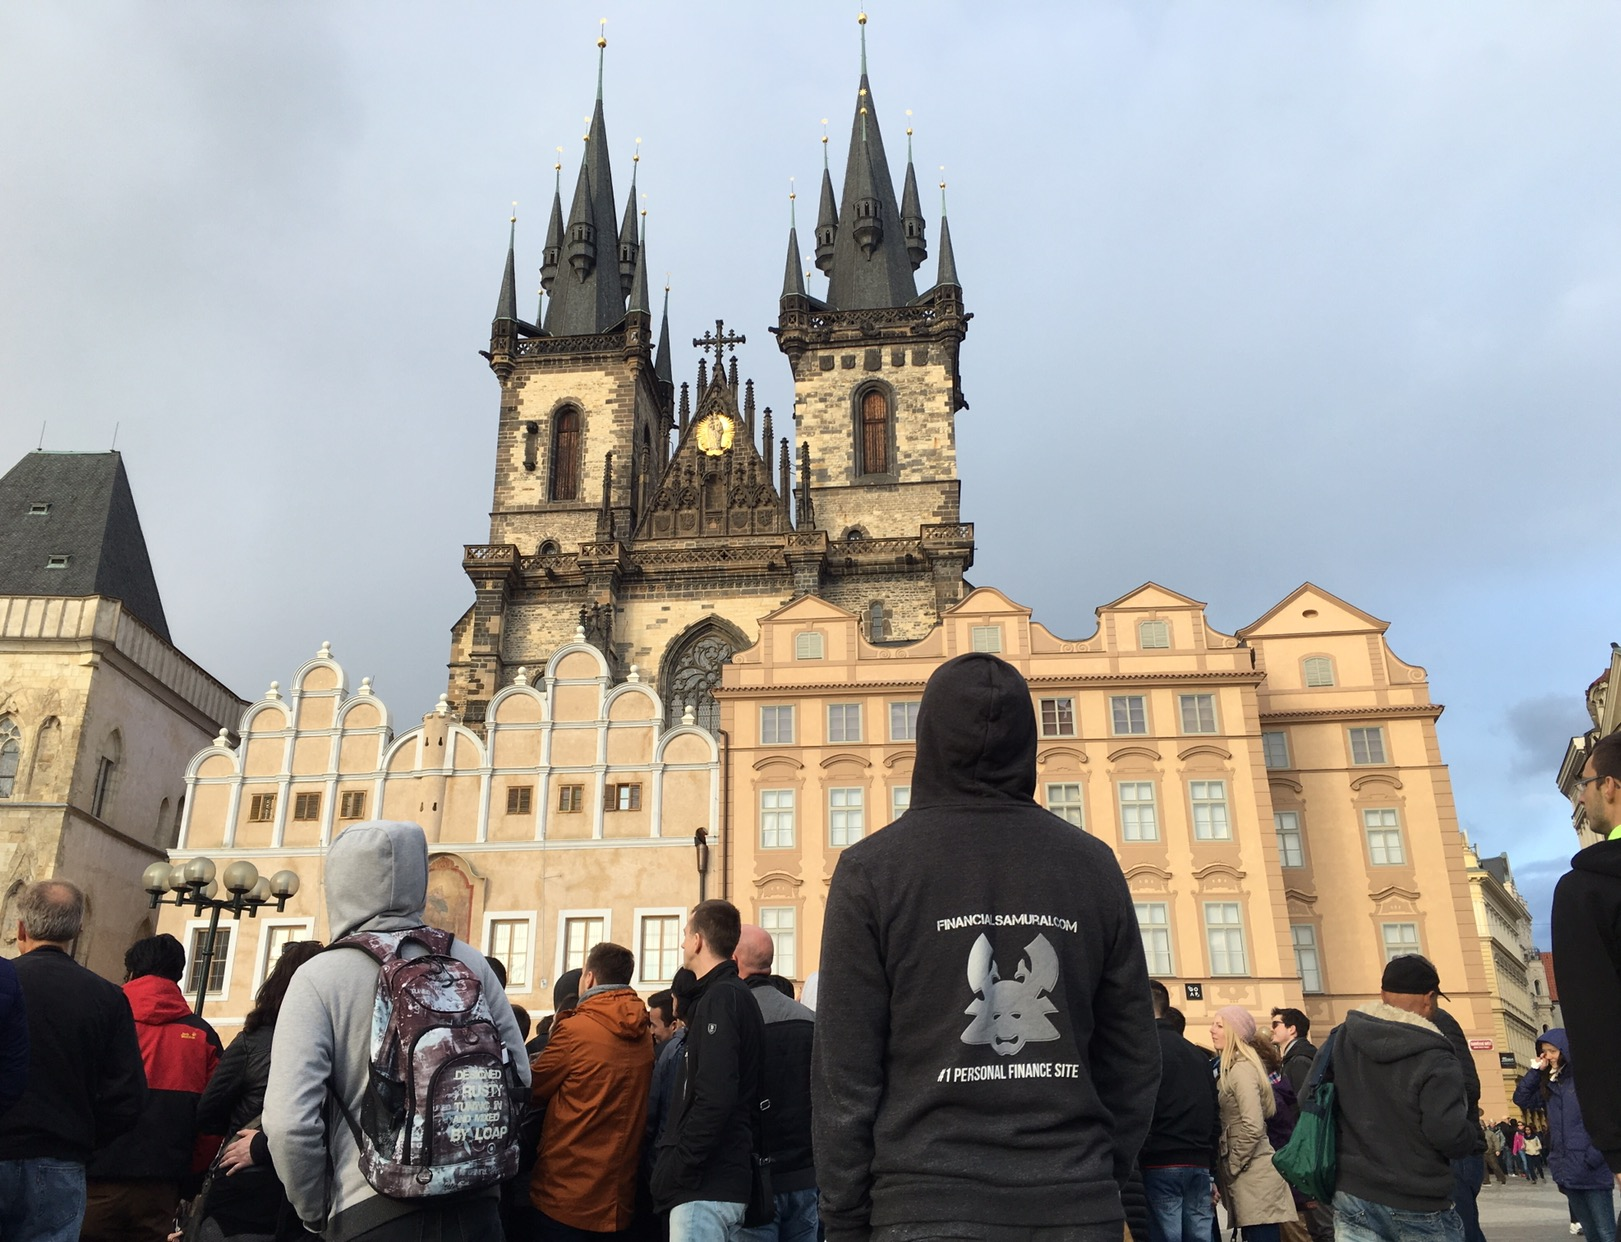 Financial Samurai in Prague - The Best Way To Travel For Free And Lower Your Taxable Income